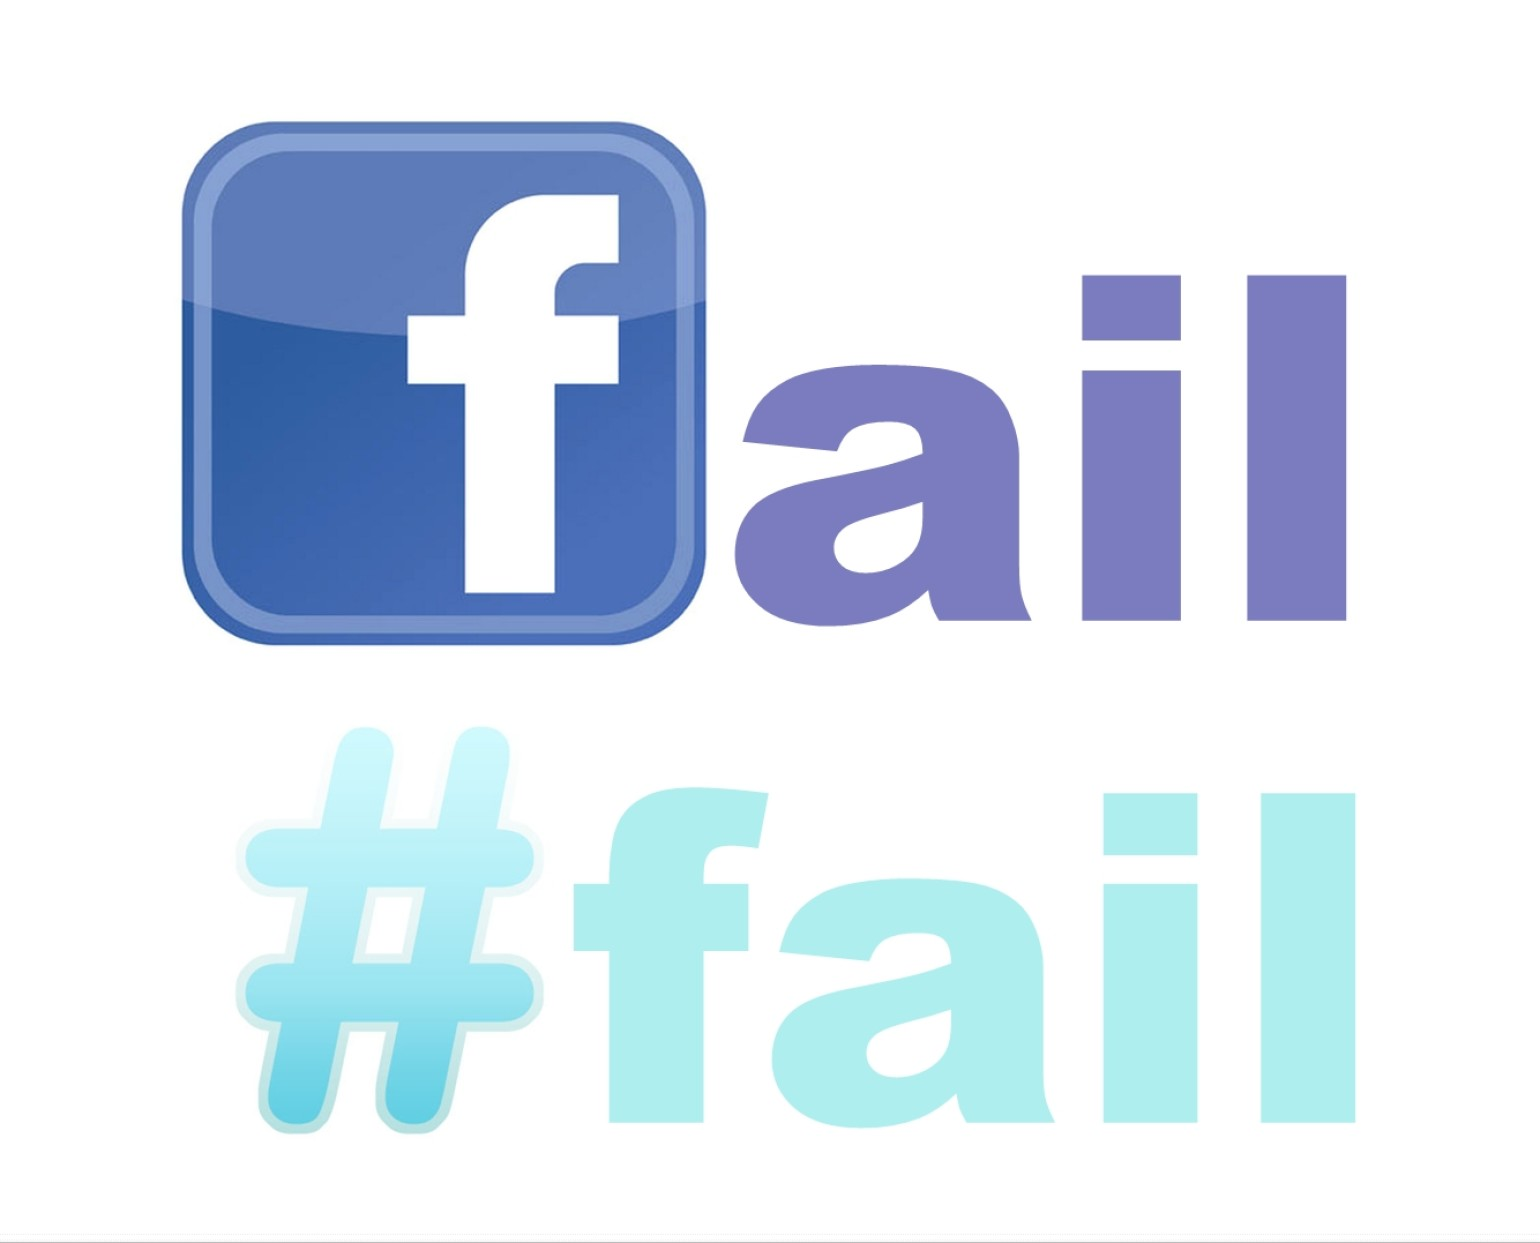 95 Percent of Small Businesses Failed on Social Media